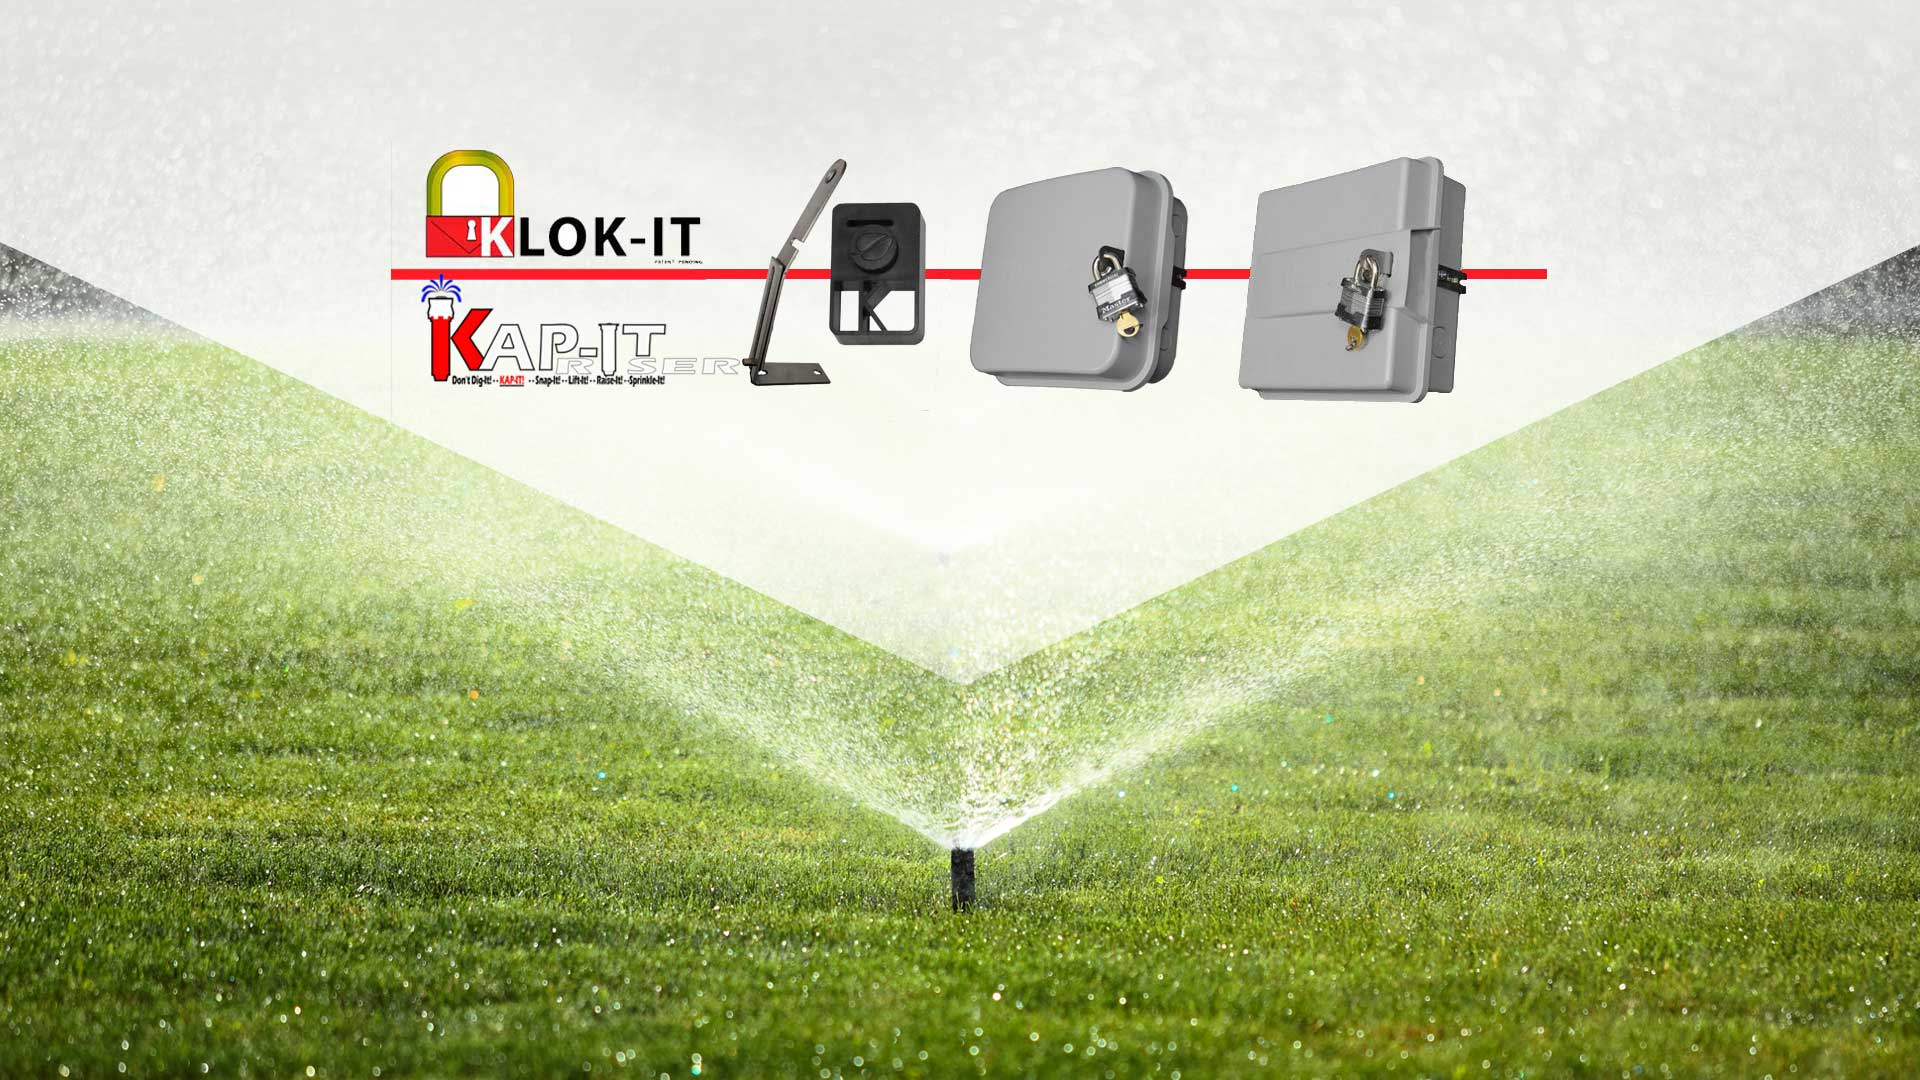 KJ Ketterling Enterprises Klok It, Locking Devices and Sprinkler Clock Security slide 1